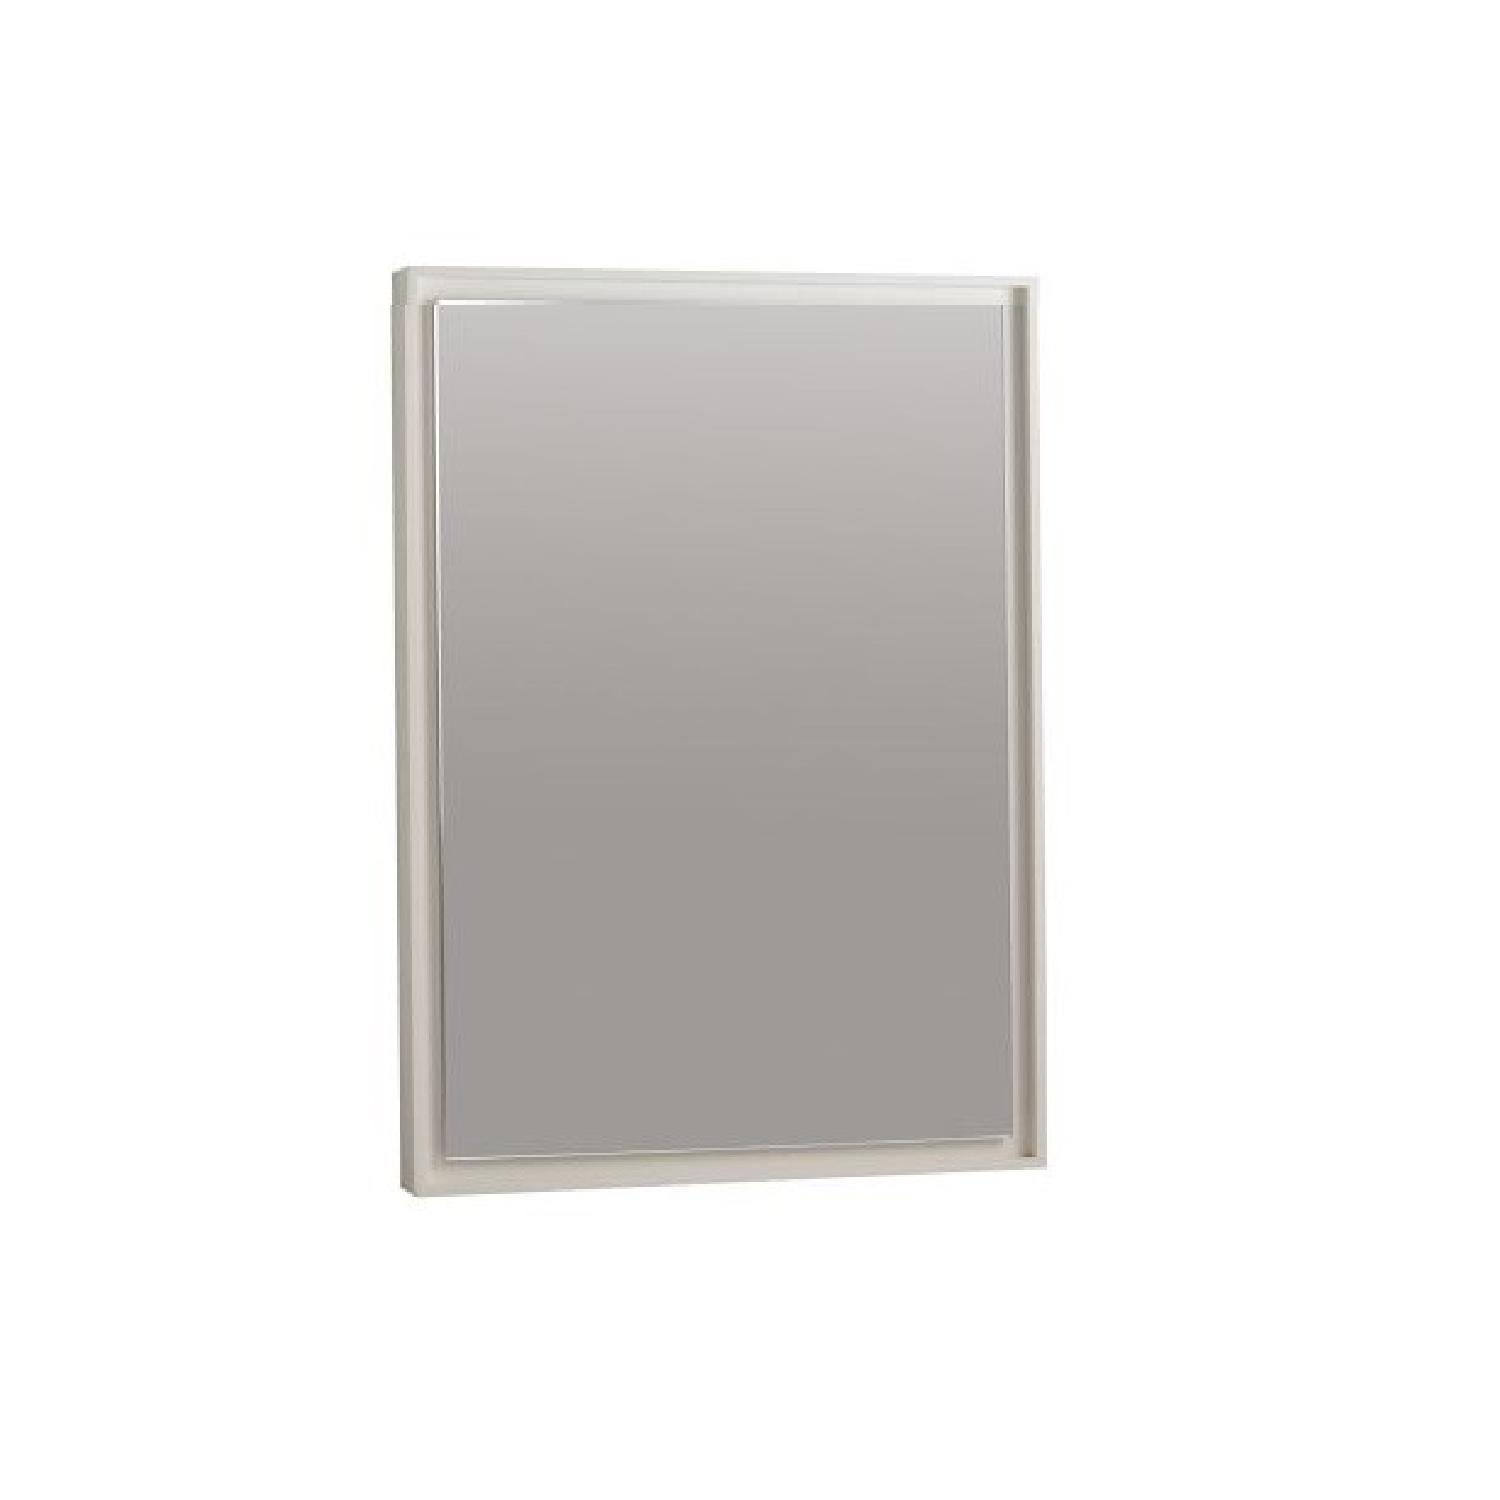 West Elm Floating Wood Wall Mirror in White - image-0